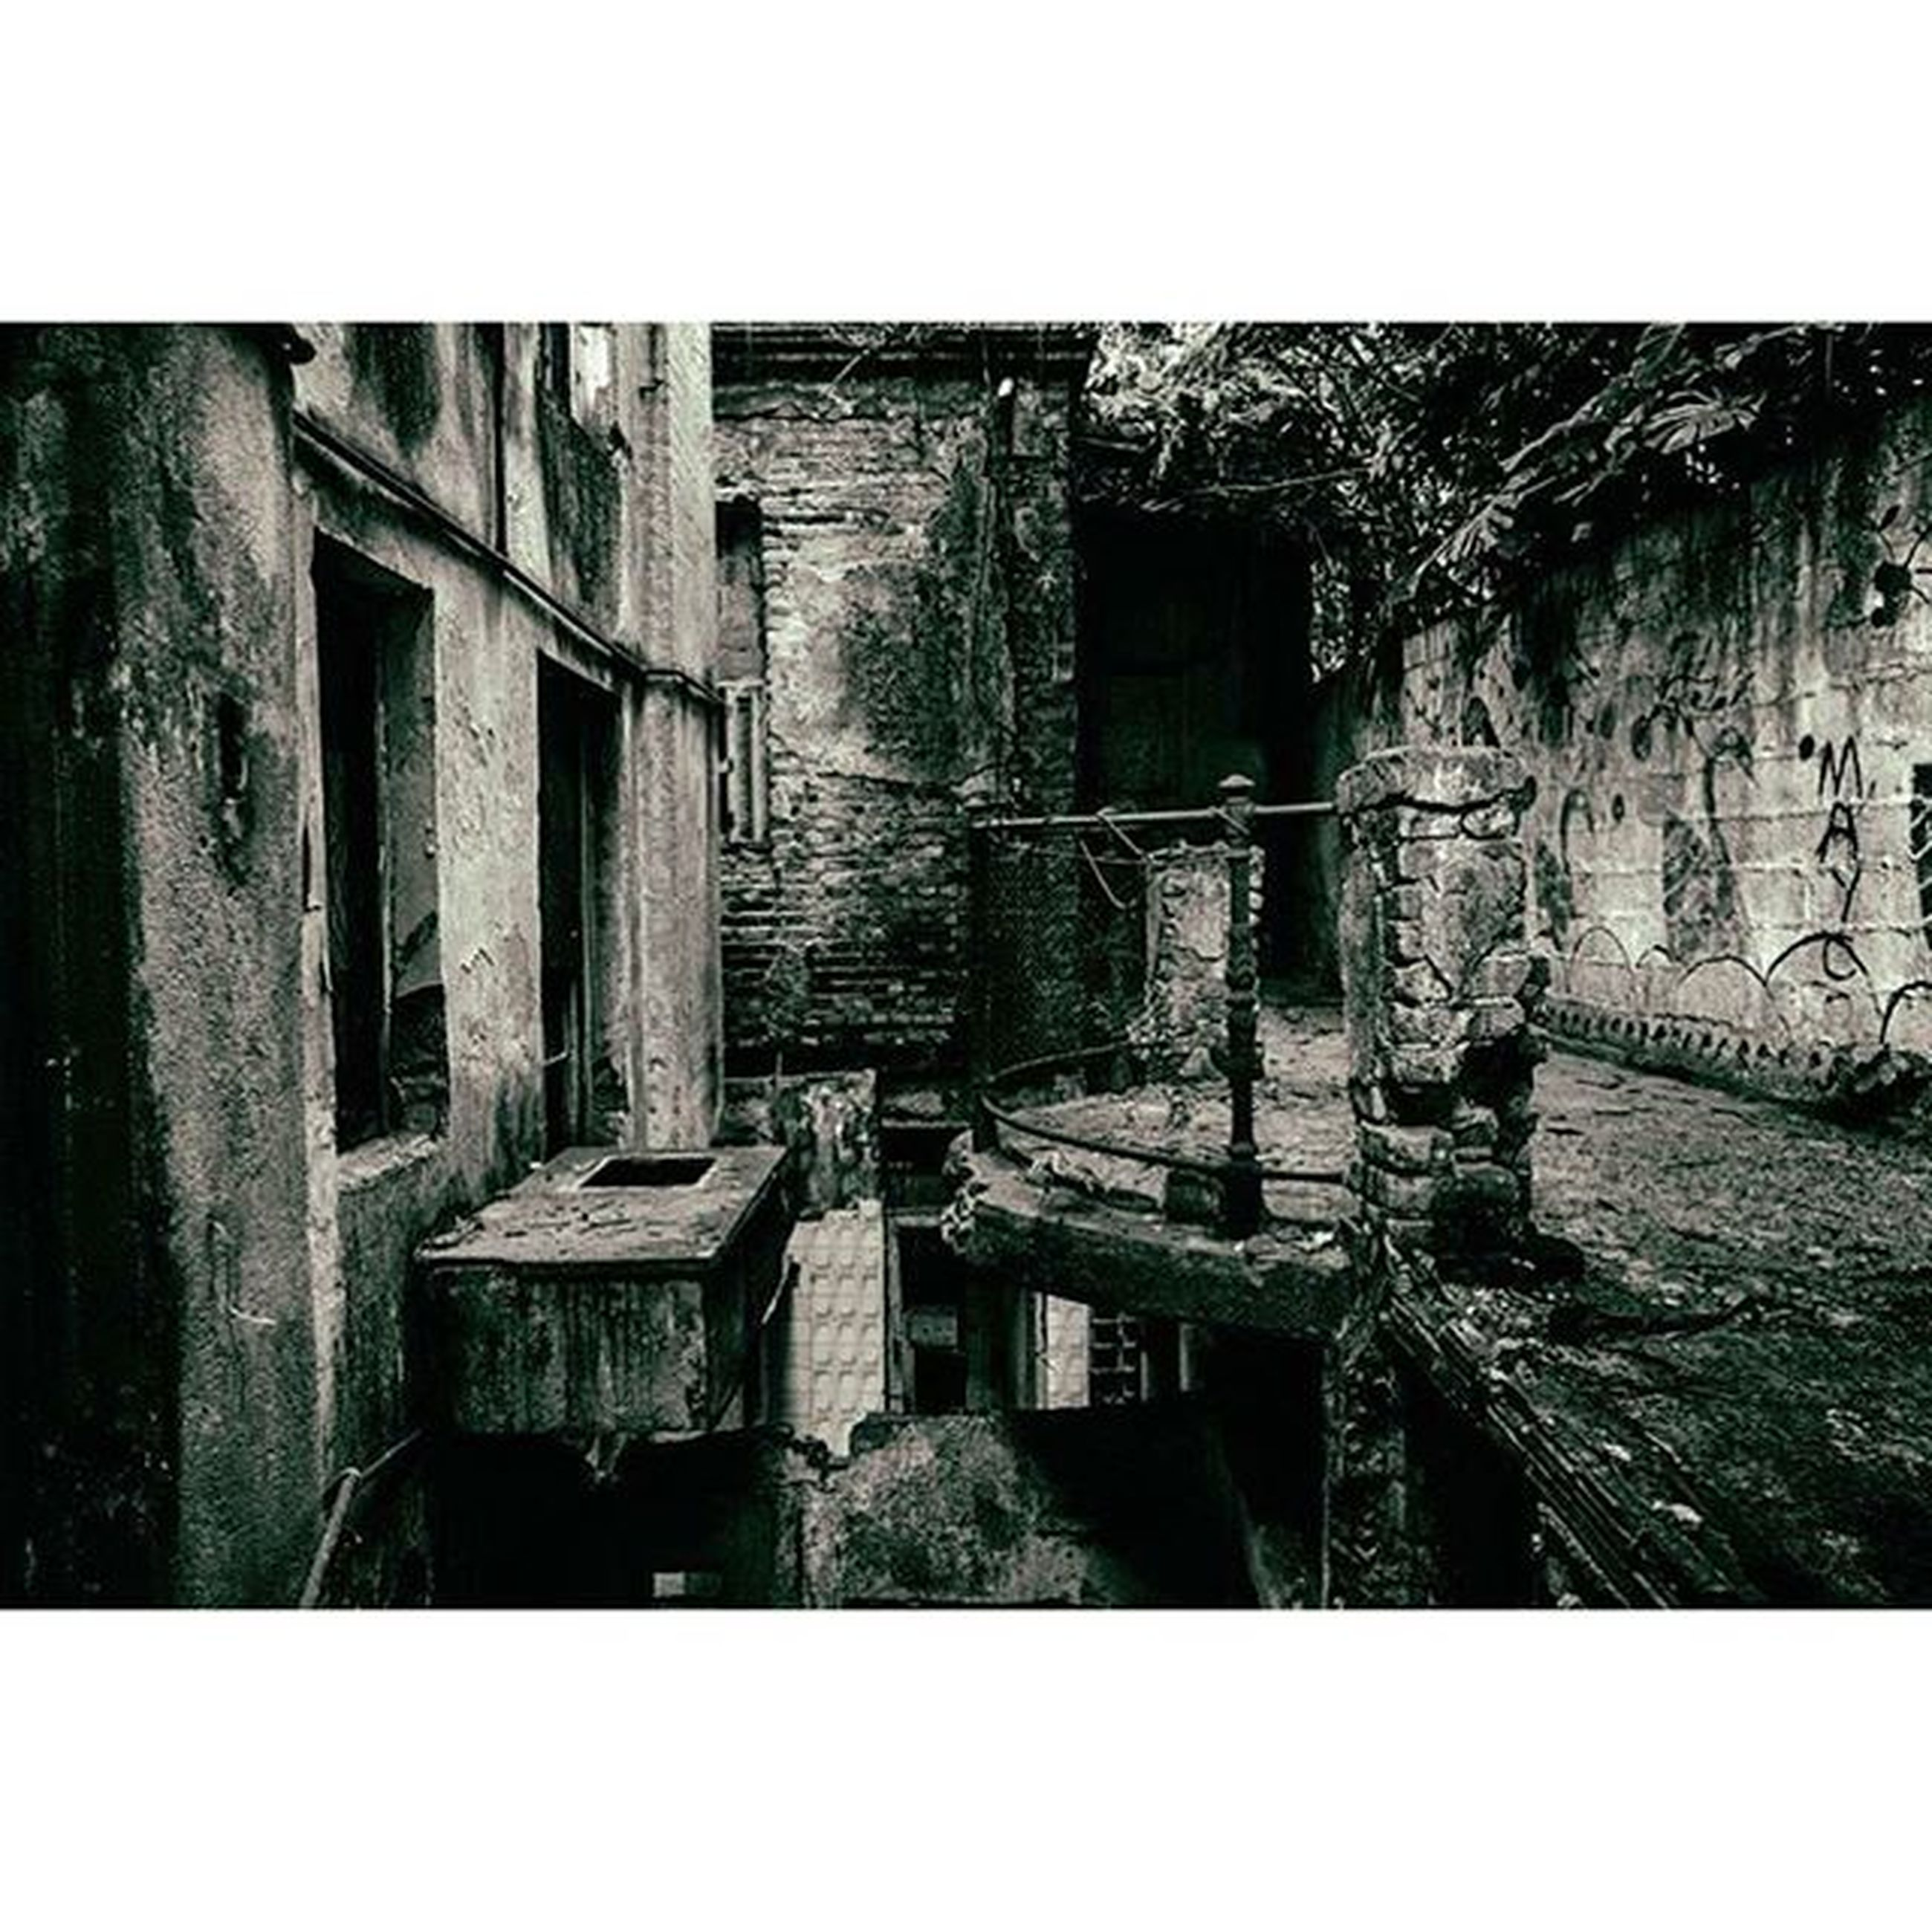 transfer print, auto post production filter, architecture, built structure, building exterior, abandoned, old, house, damaged, weathered, deterioration, run-down, obsolete, day, outdoors, no people, wall - building feature, wall, window, tree